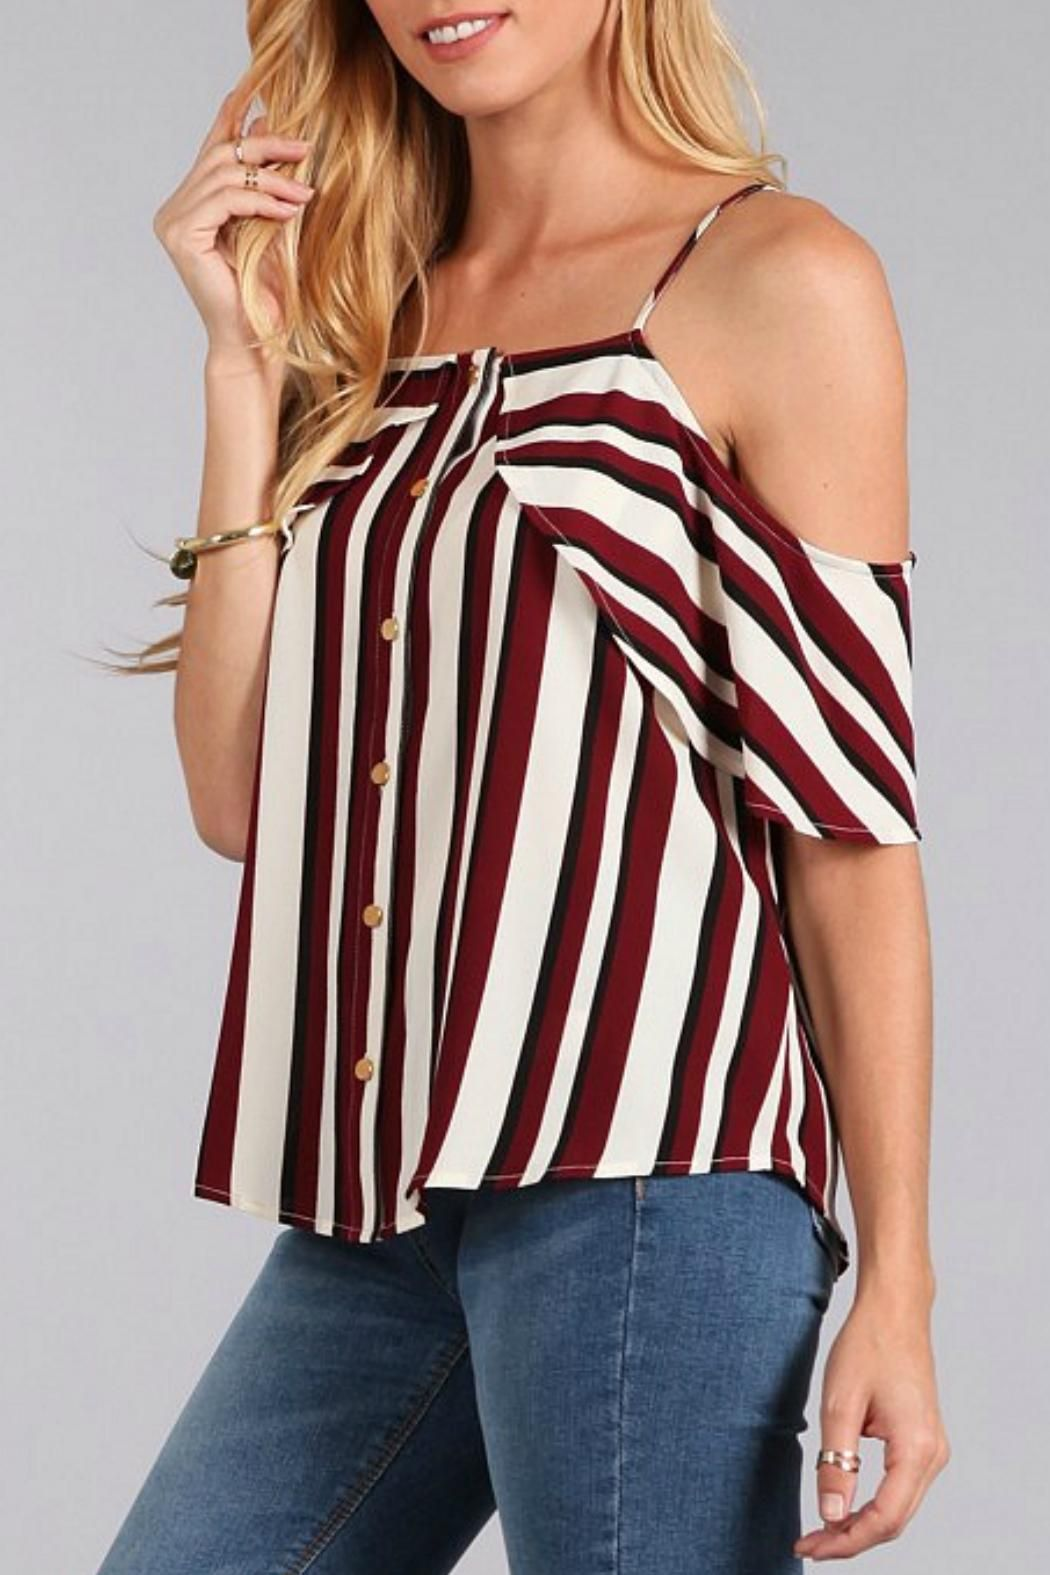 3dd1ba46d90 Cold shoulder striped shirt, with ruffle detail and gold buttons. Cold  Shoulder Shirts by Sweet Wanderer. Clothing - Tops - Casual Clothing - Tops  - Off The ...